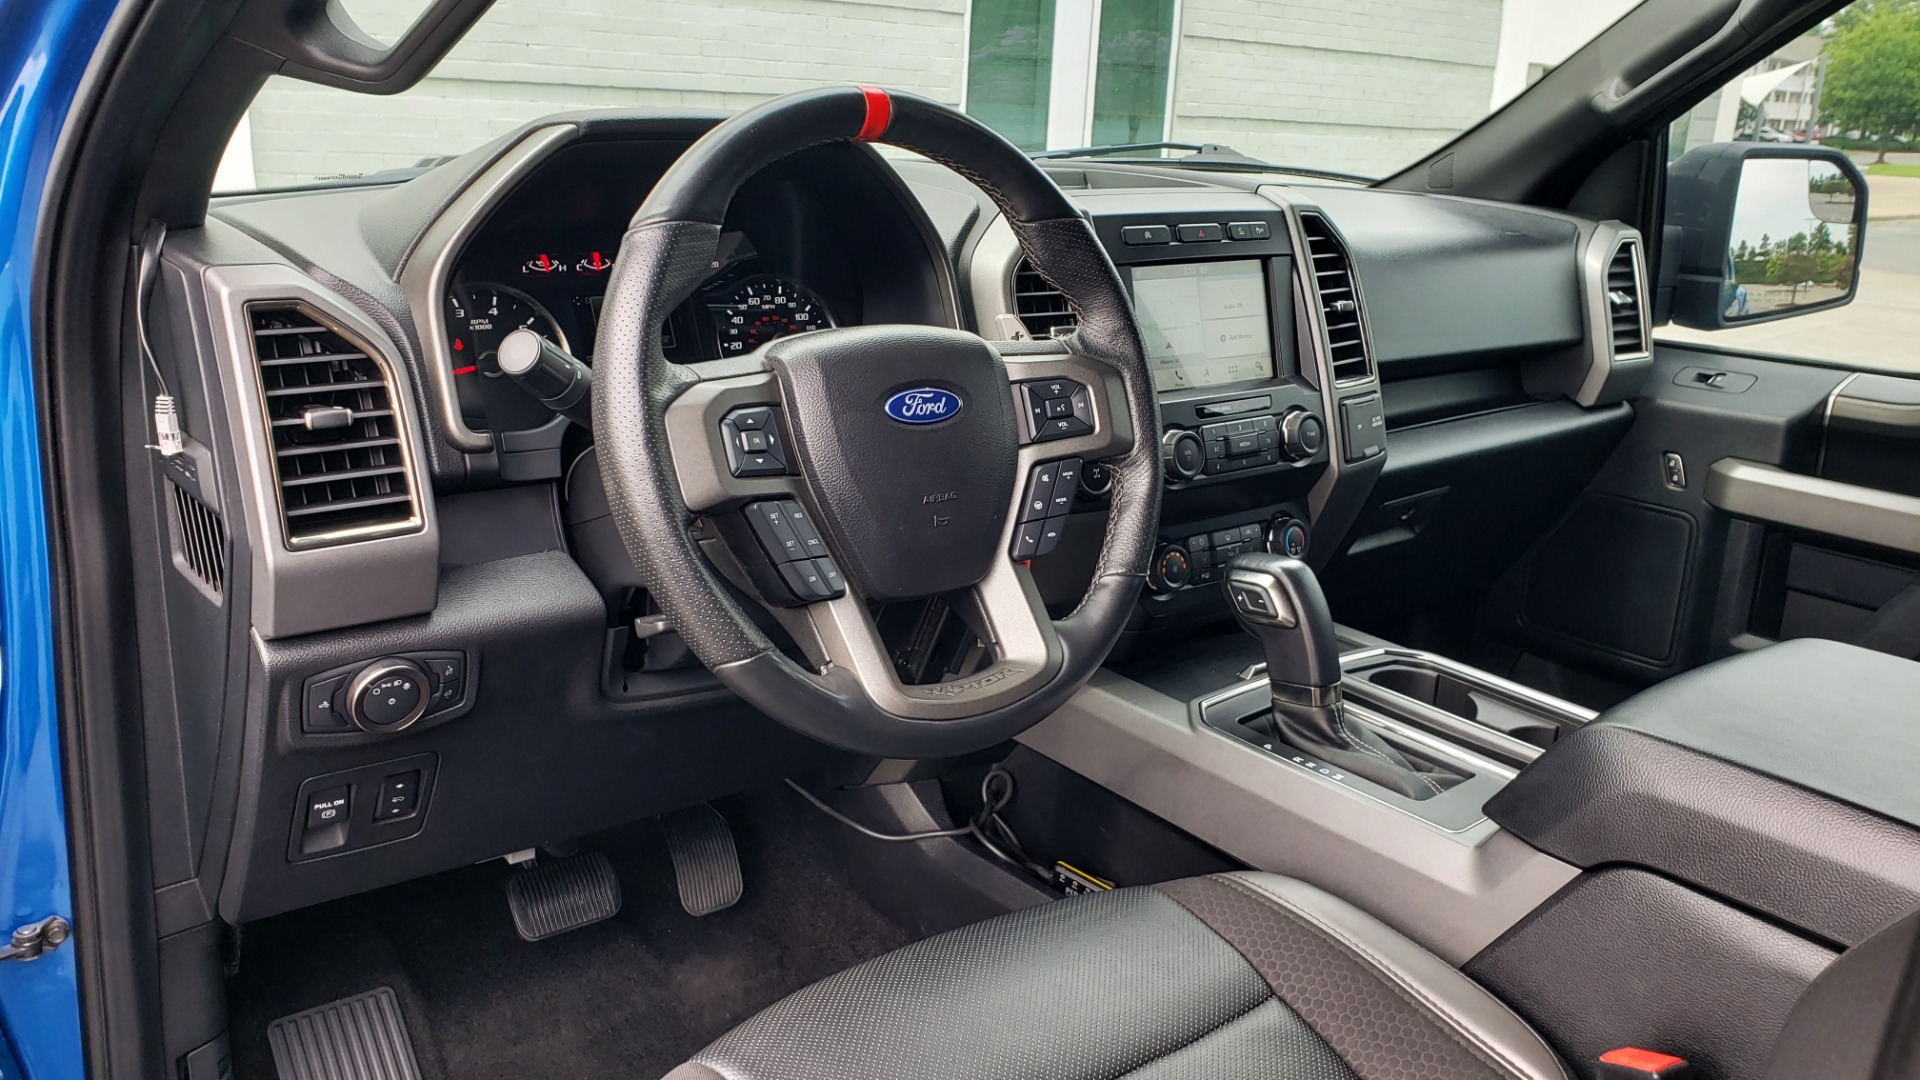 Used 2019 Ford F-150 RAPTOR 4X4 / CREWCAB / PRE-RUNNER CUSTOM SUSPENSION for sale $79,999 at Formula Imports in Charlotte NC 28227 49